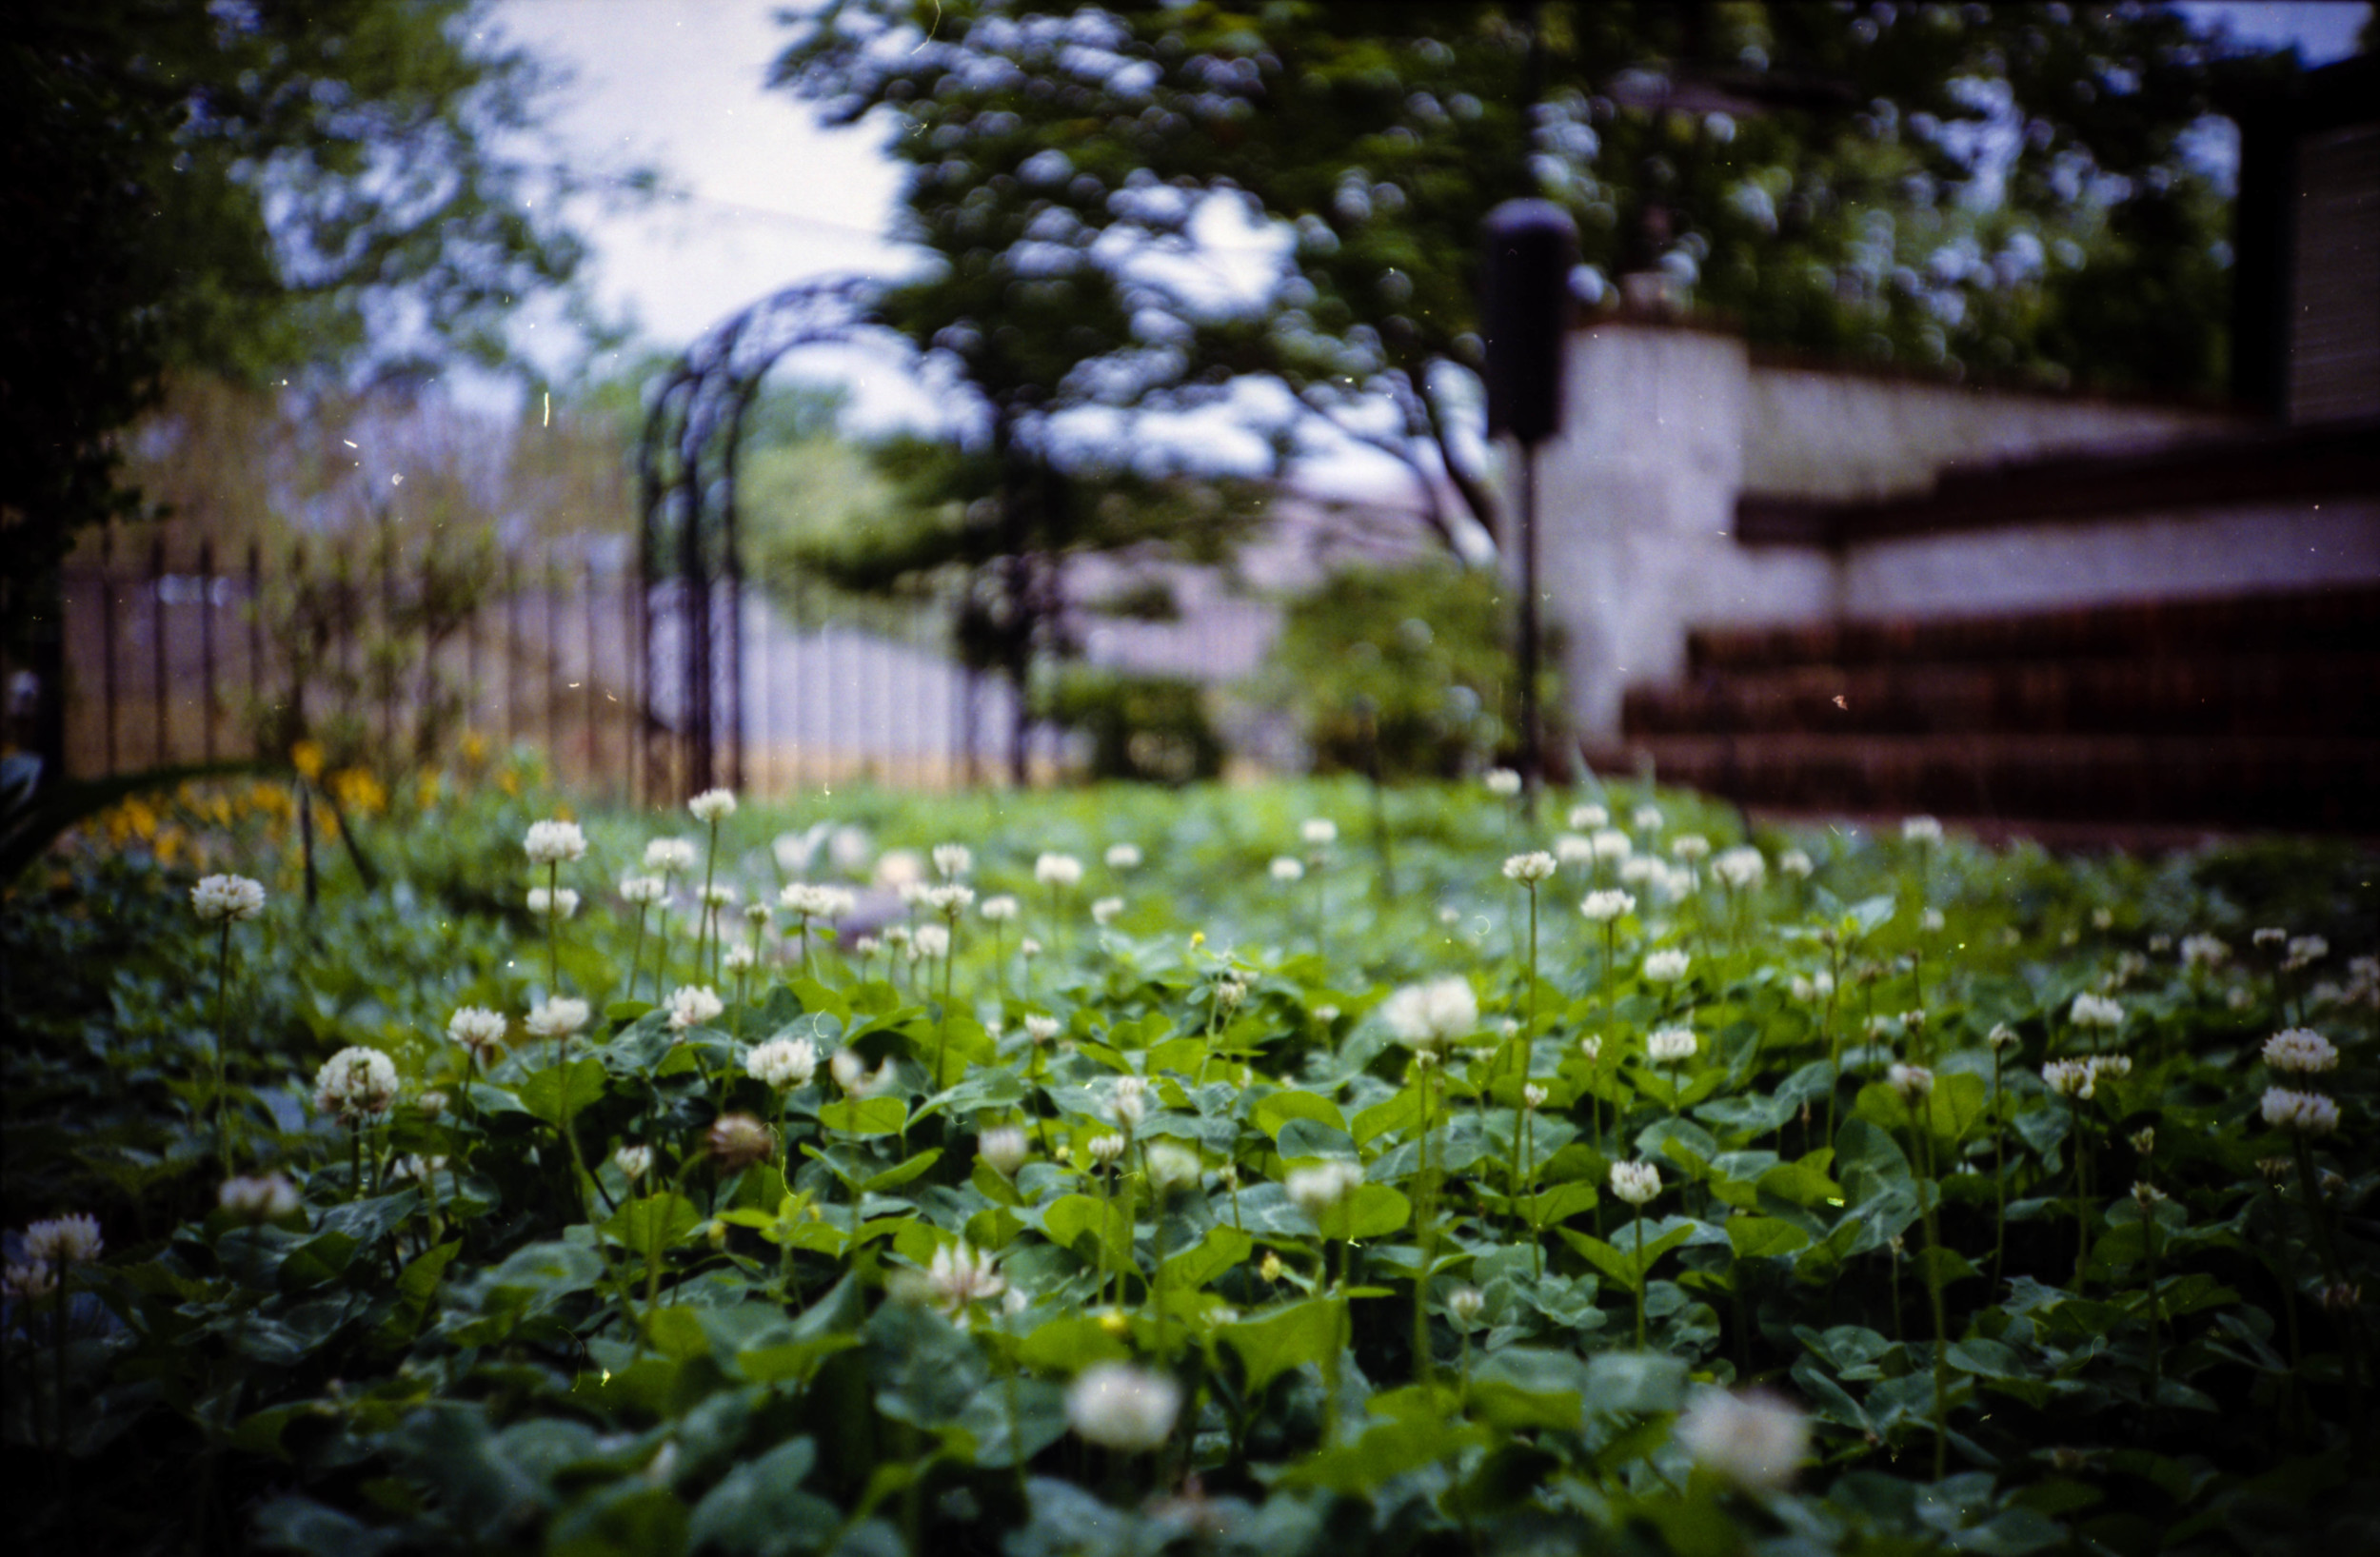 """The """"Lomo effect"""" with heavy vignetting, vibrant colors, unspecific focus, and fisheye viewpoint."""